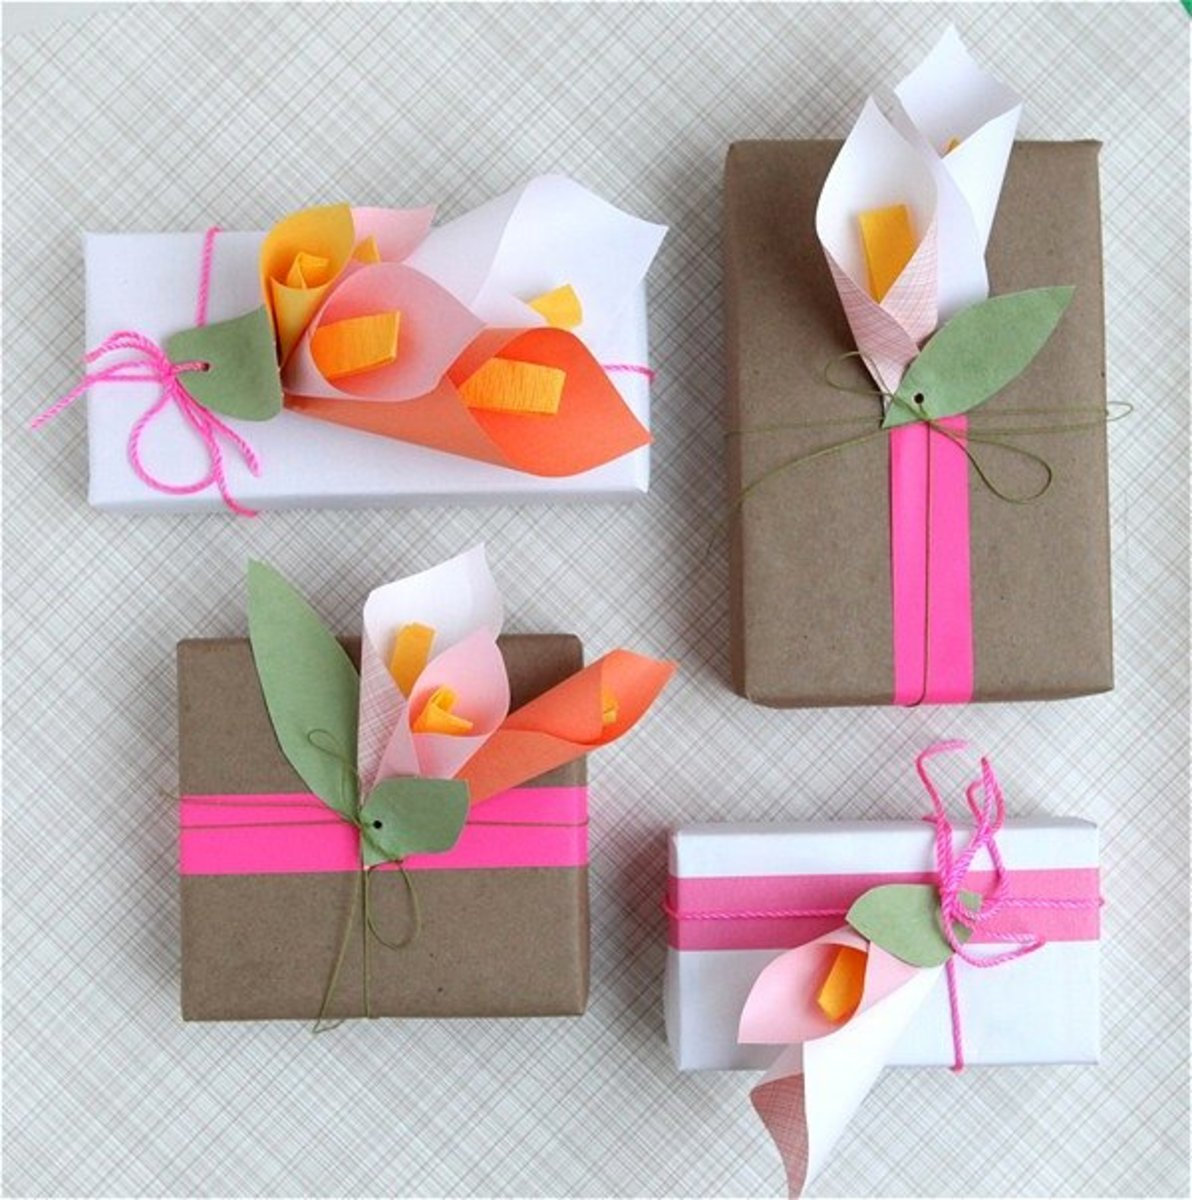 Paper flowers are an inexpensive and whimsical way to brighten up a Mother's Day gift.